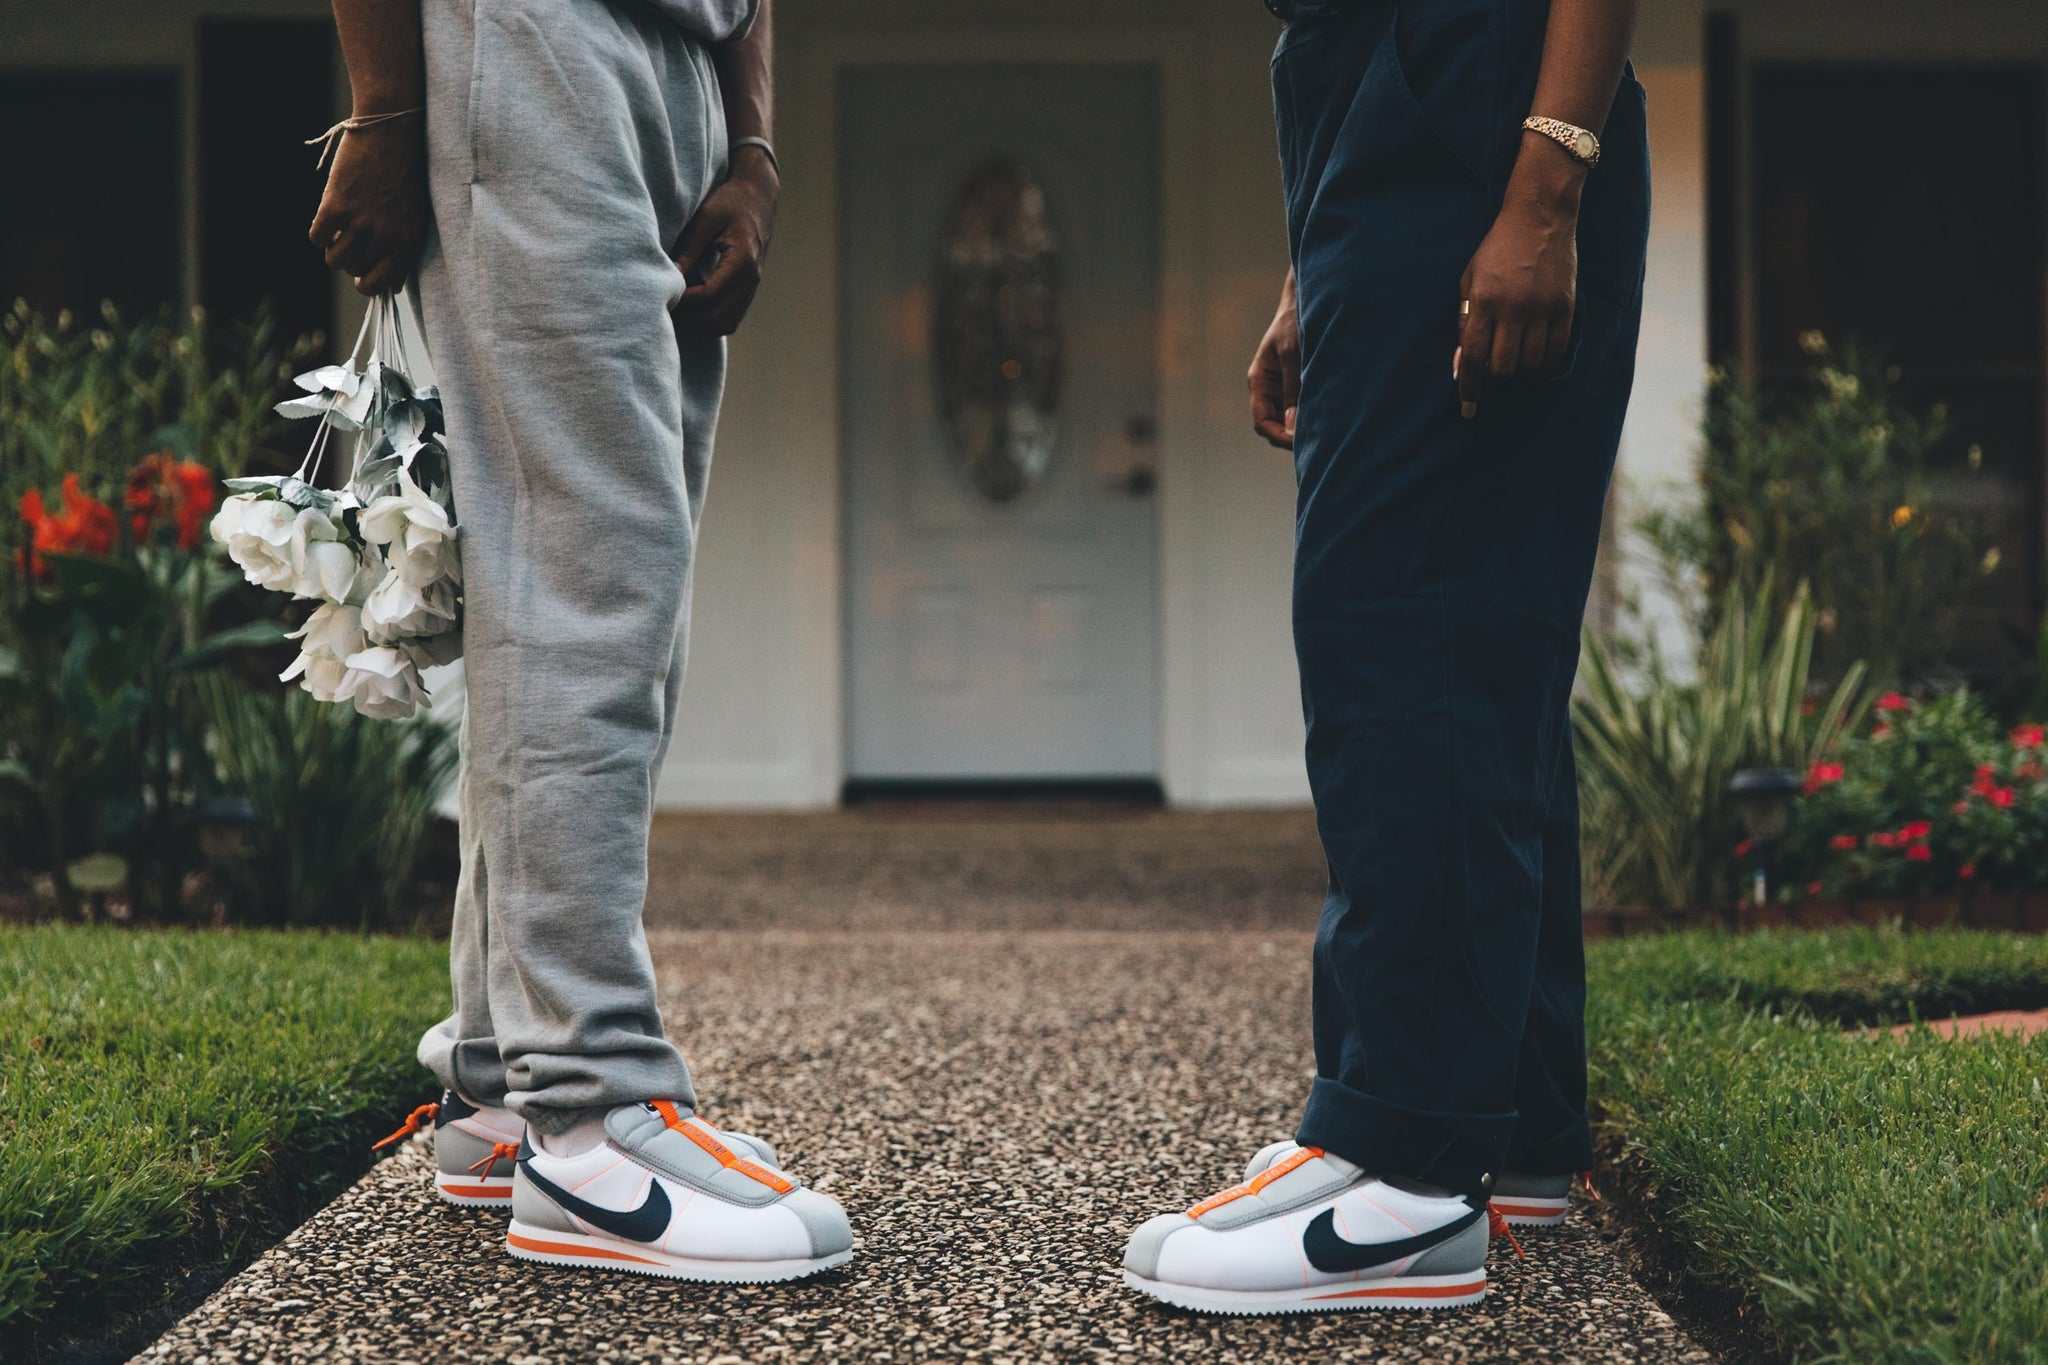 ffb750c7b43 The Cortez Kenny IV is a slip-on take on the classic Nike Cortez. For this  new design